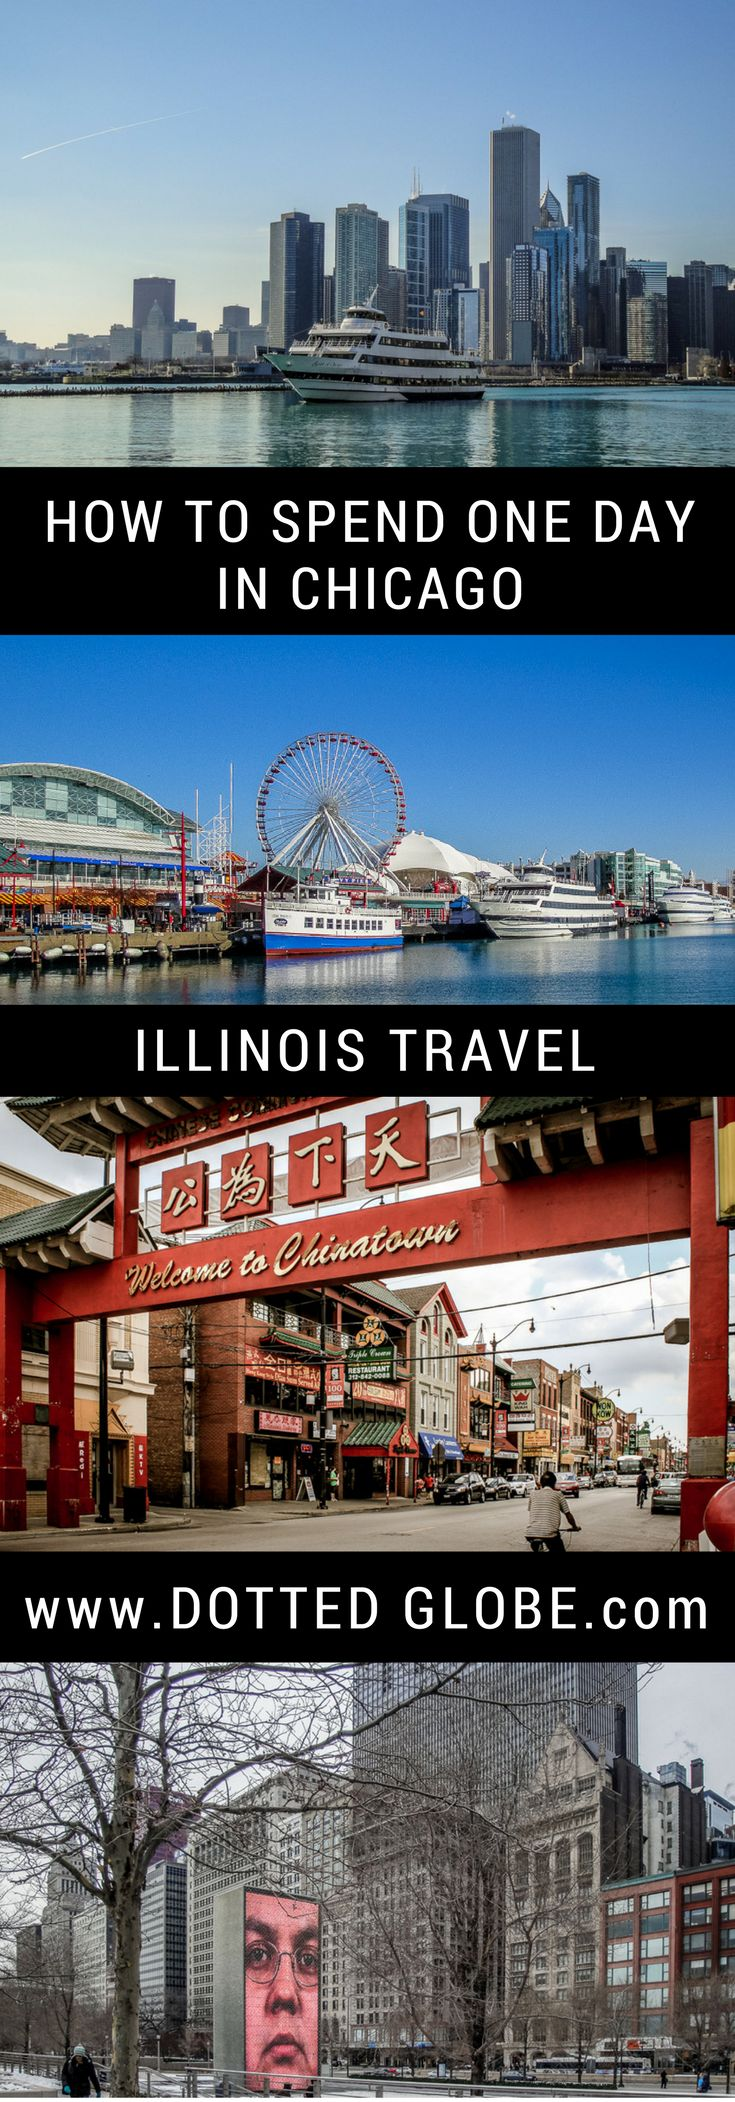 Guide to spending a perfect day in Chicago, perfect for those short on time in the windy city. See Willis Tower skydeck, Art Institute of Chicago,Buckingham Fountain, the Bean and more in one day.